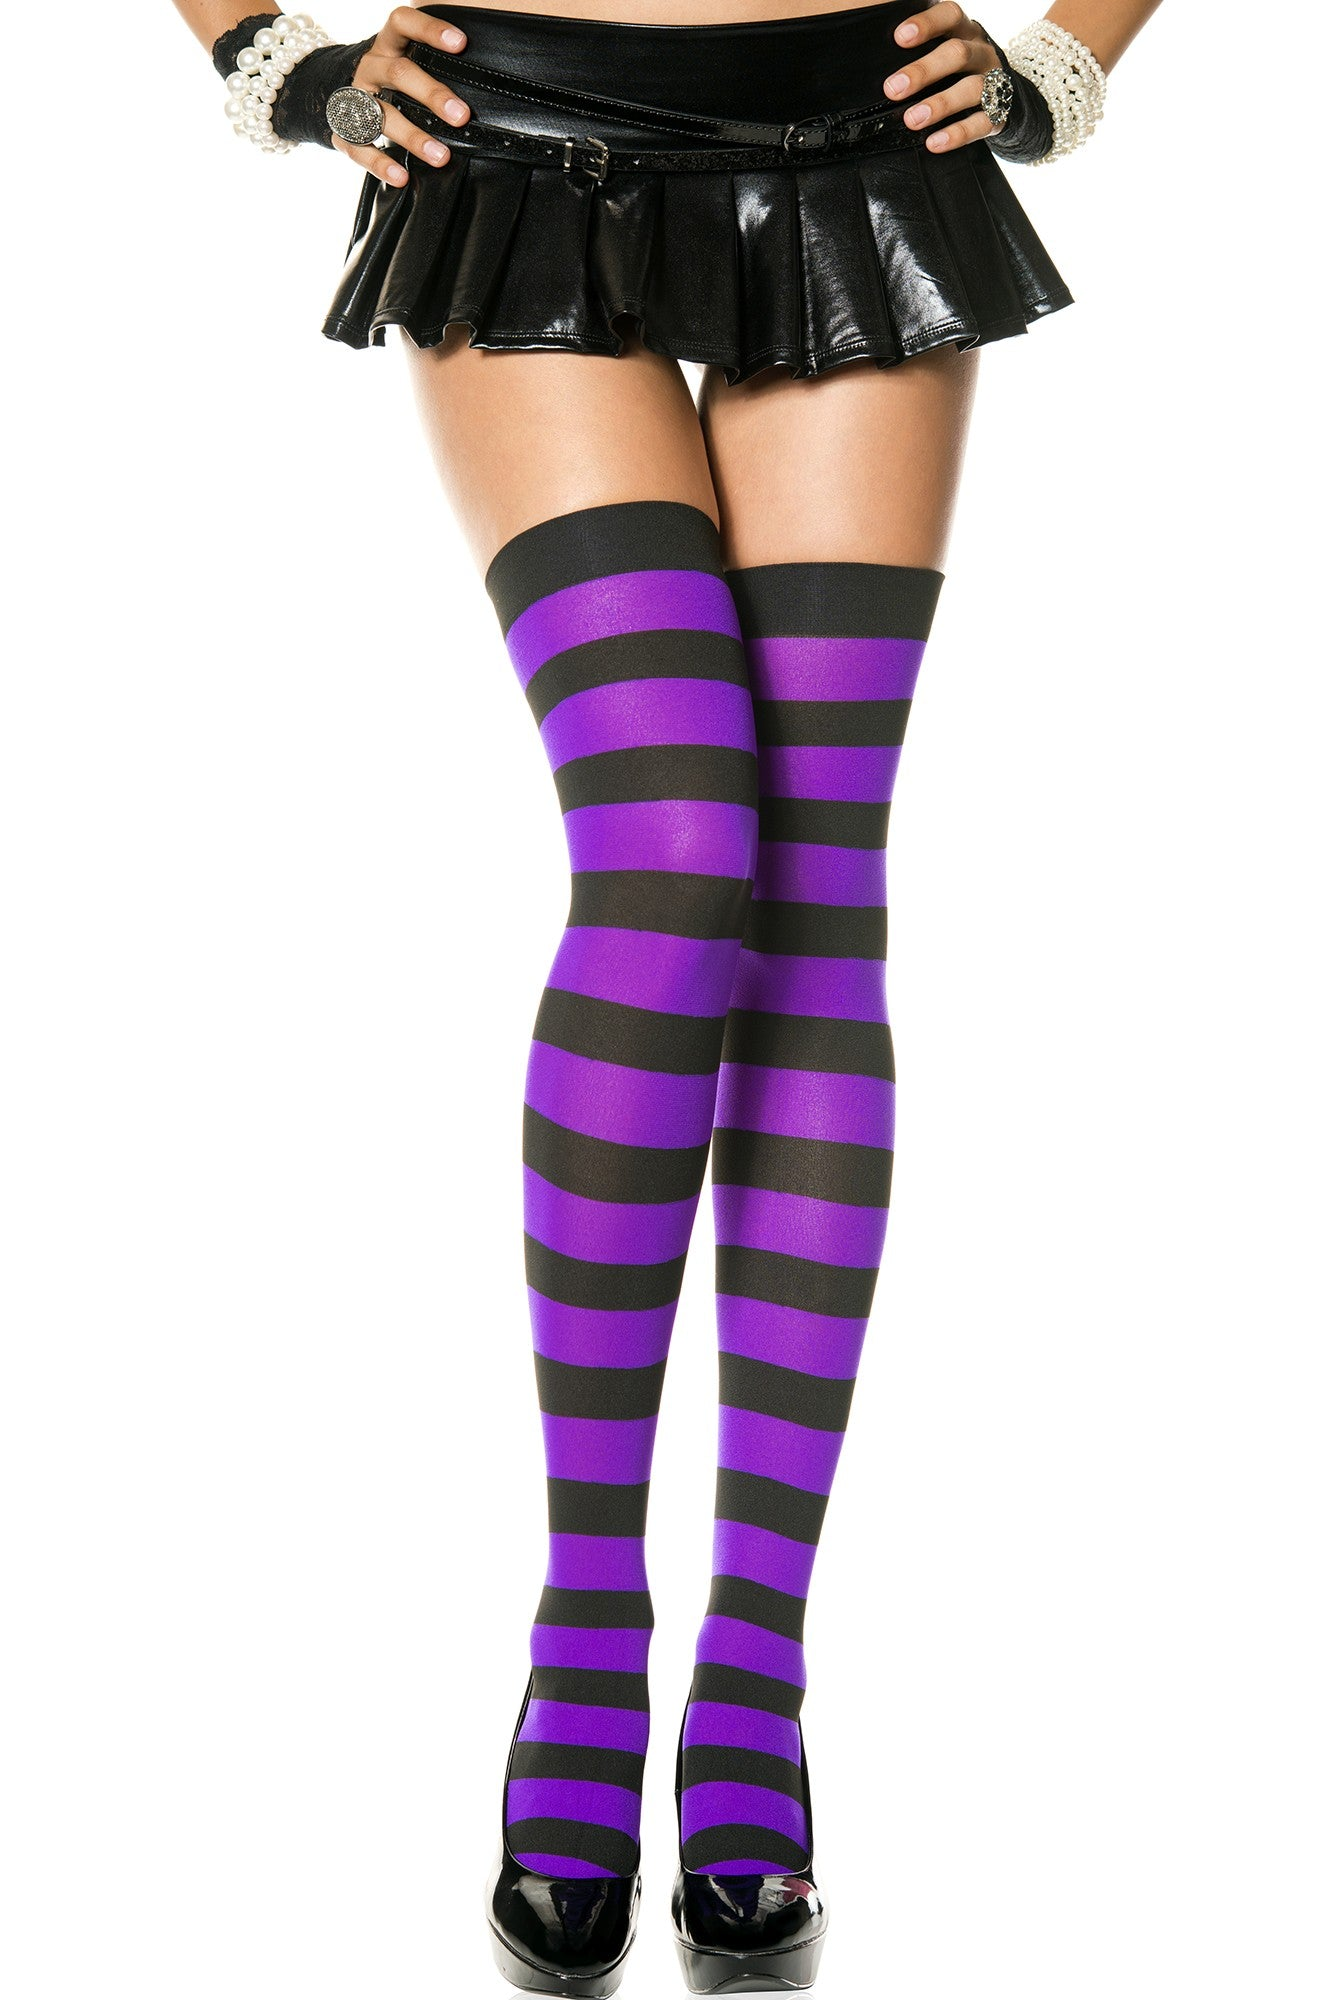 ebf58a644 Black and Purple Wide Striped Thigh High Stockings (Women s) Music Legs